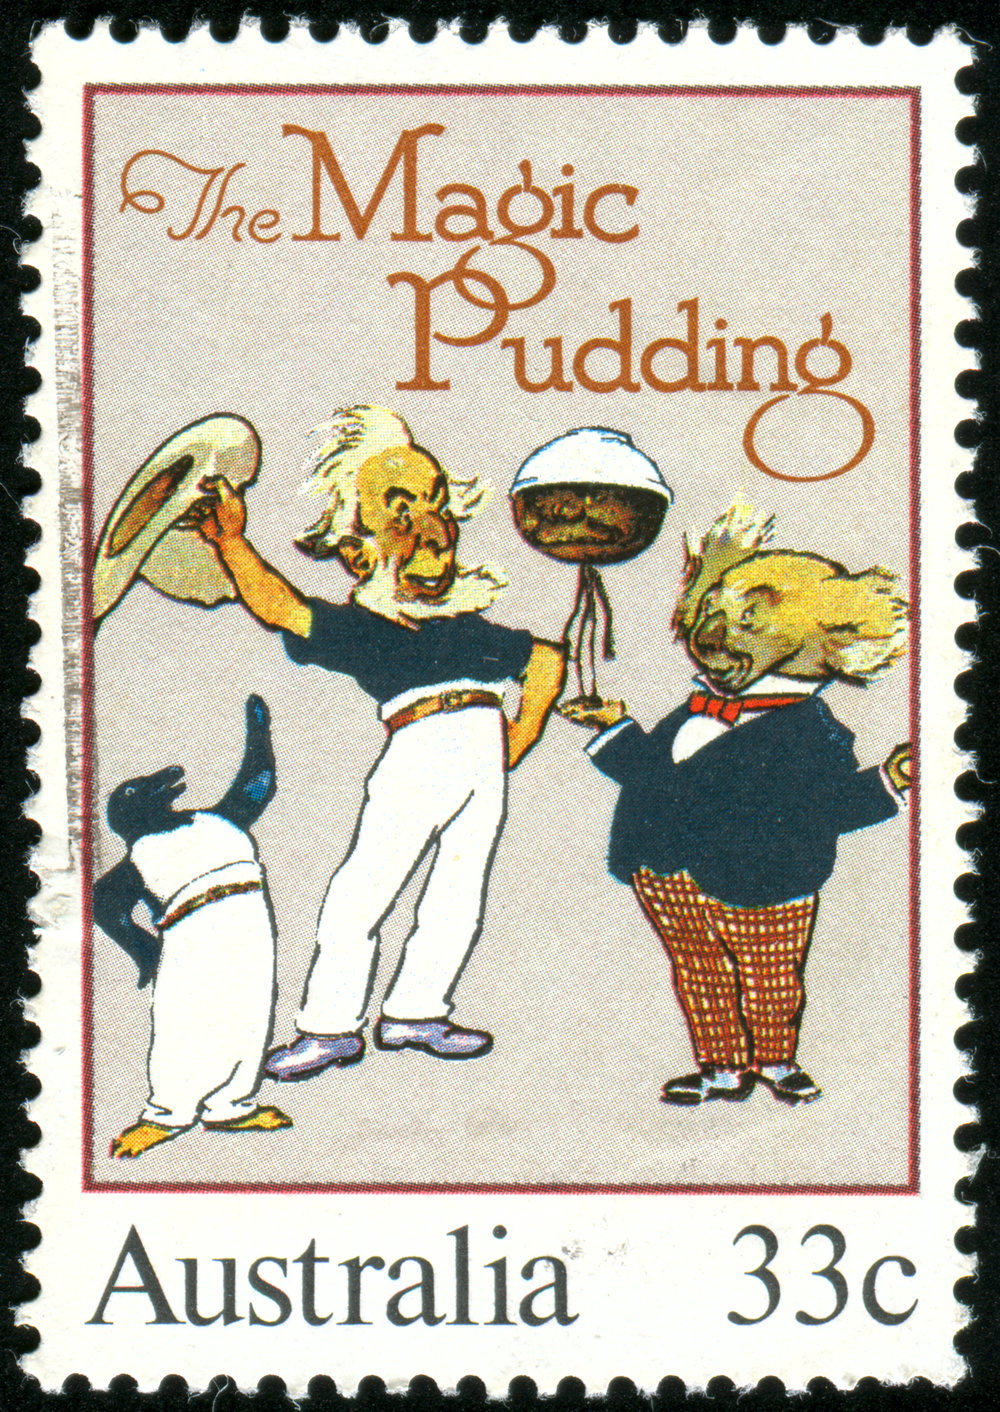 20180812 The Magic Pudding Postage Stamp shutterstock_67240729.jpg